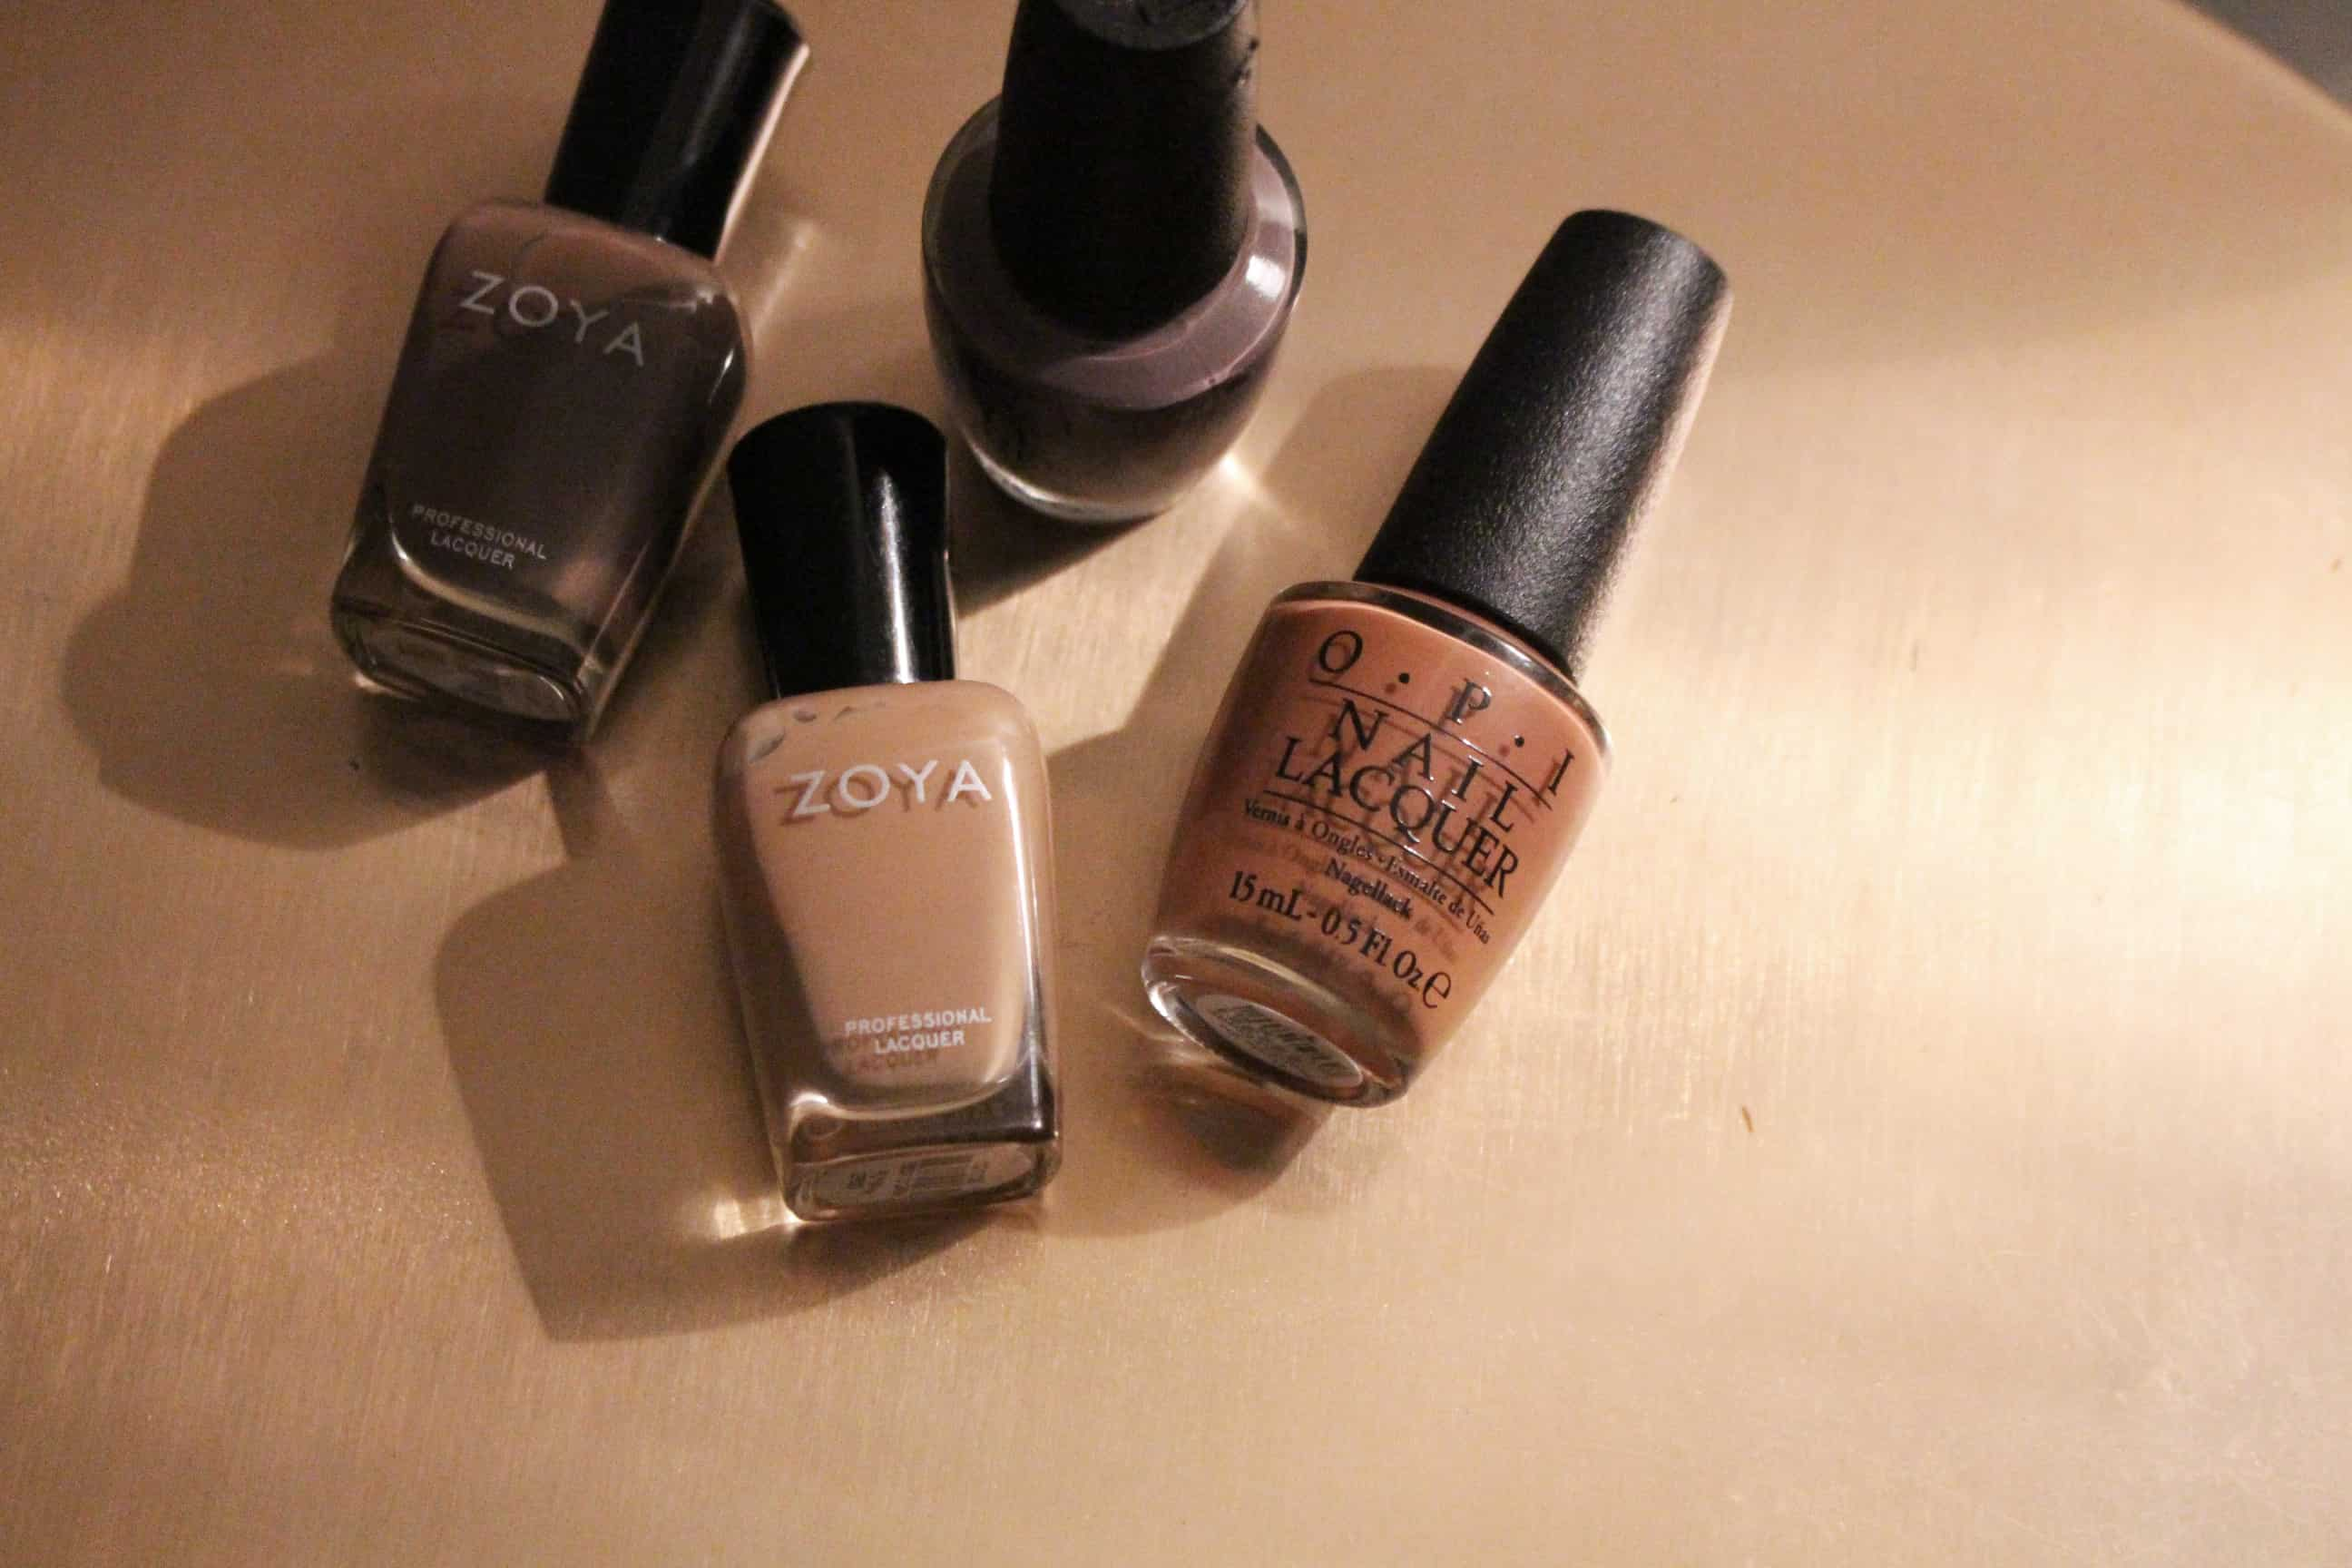 Top 4 Fall and Winter Nude Nail Polish Picks for Dark Skin - A Love 4 Me